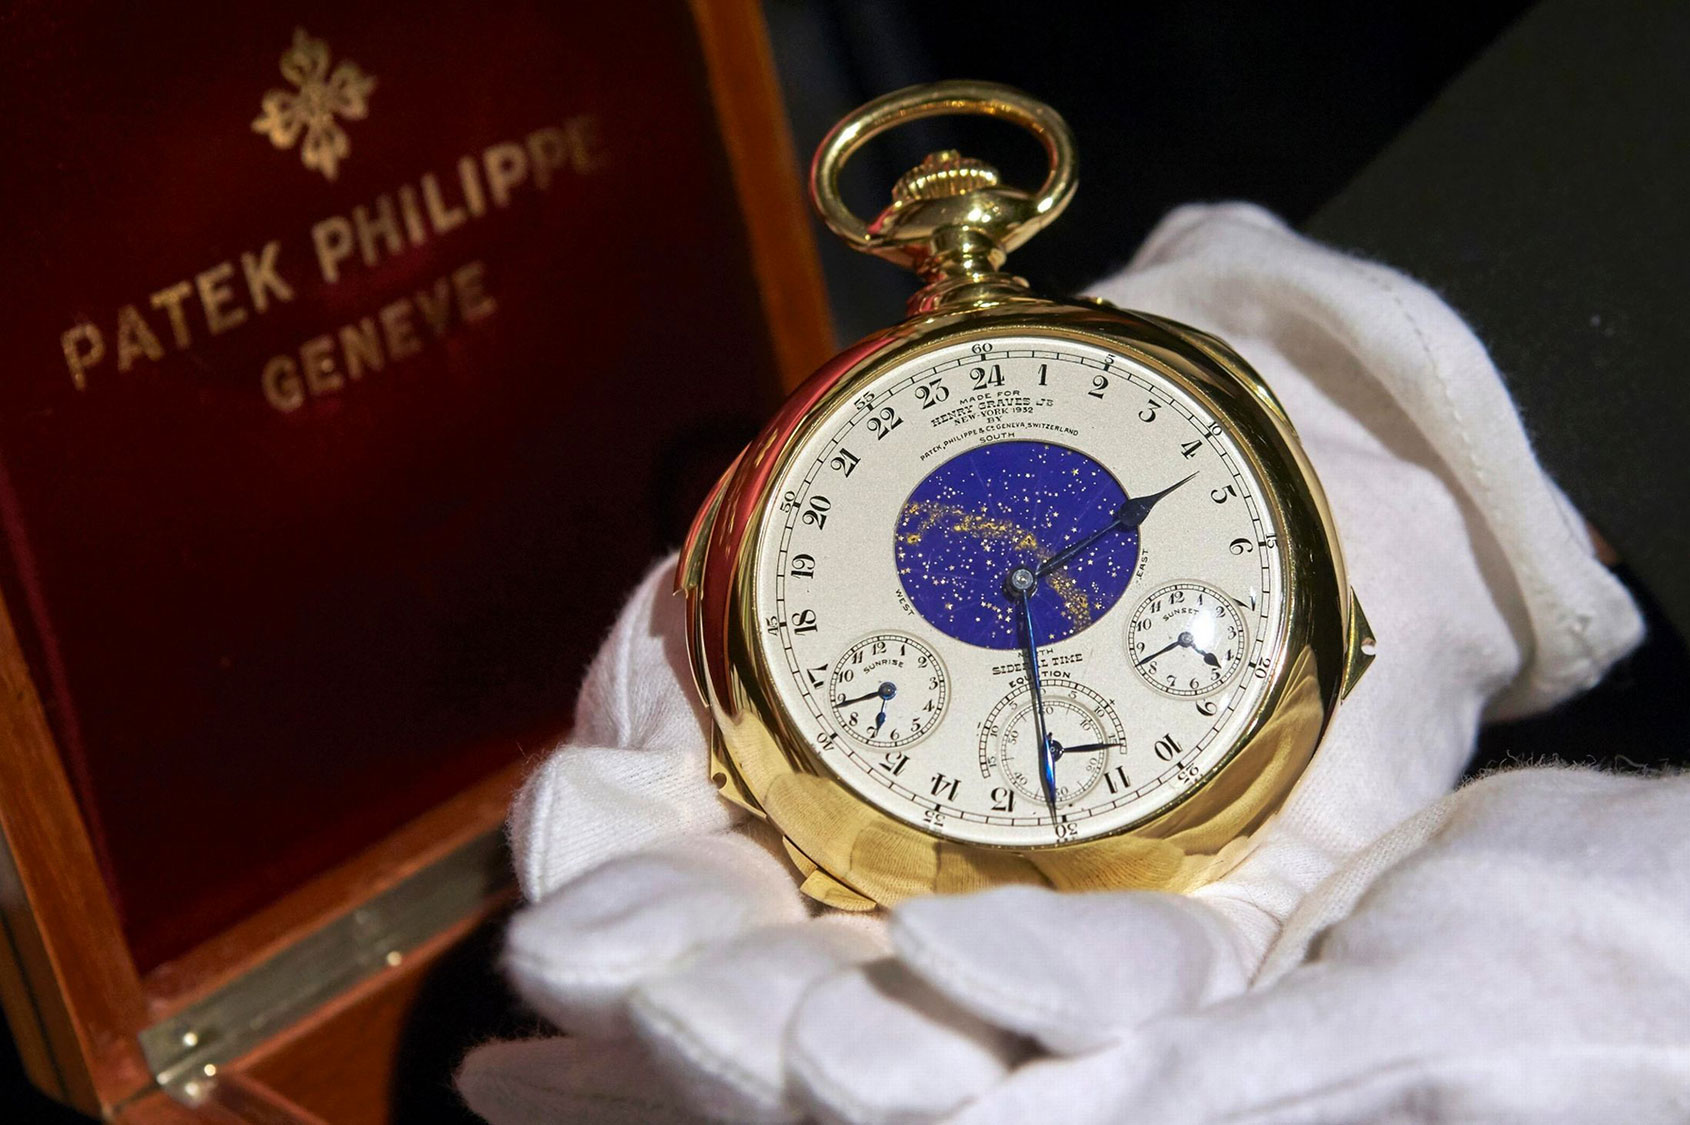 Die Graves Supercomplication von Patek Philippe